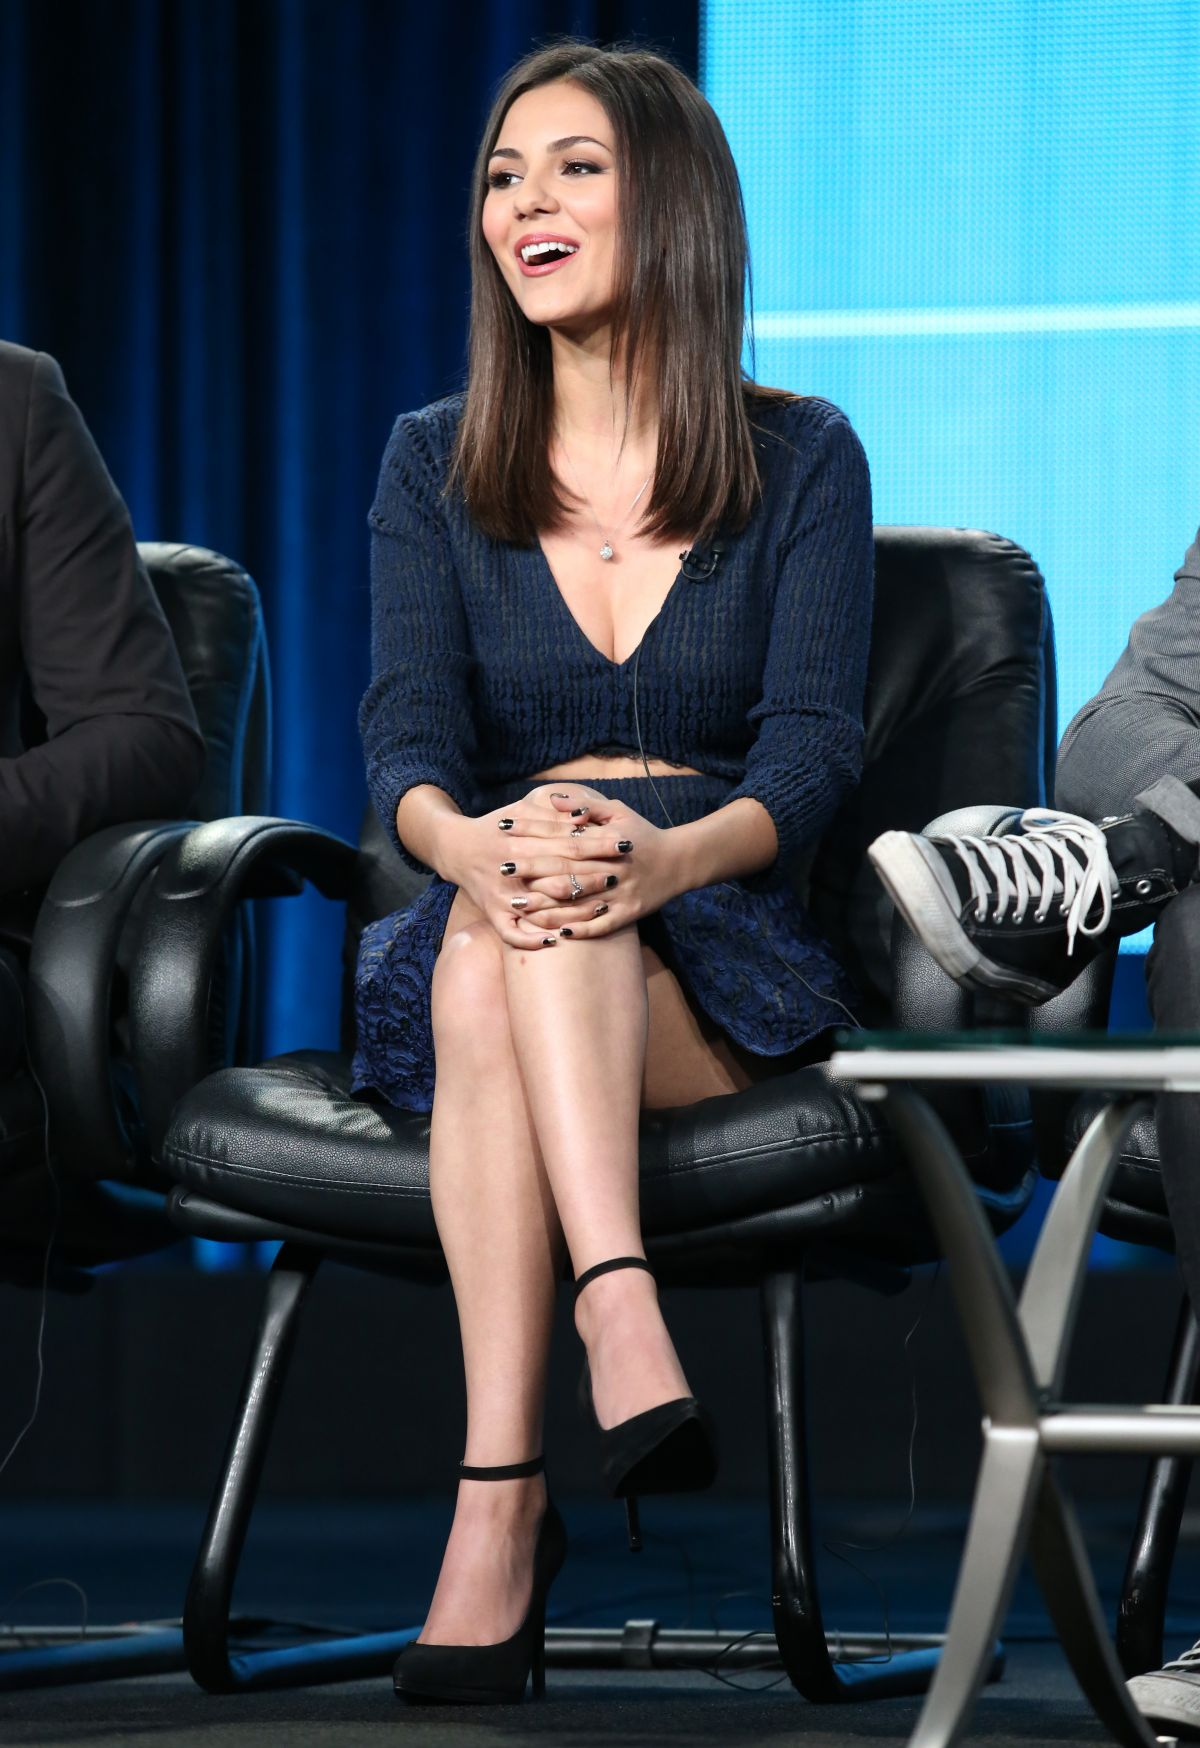 victoria justice at eye candy panel tca press tour in